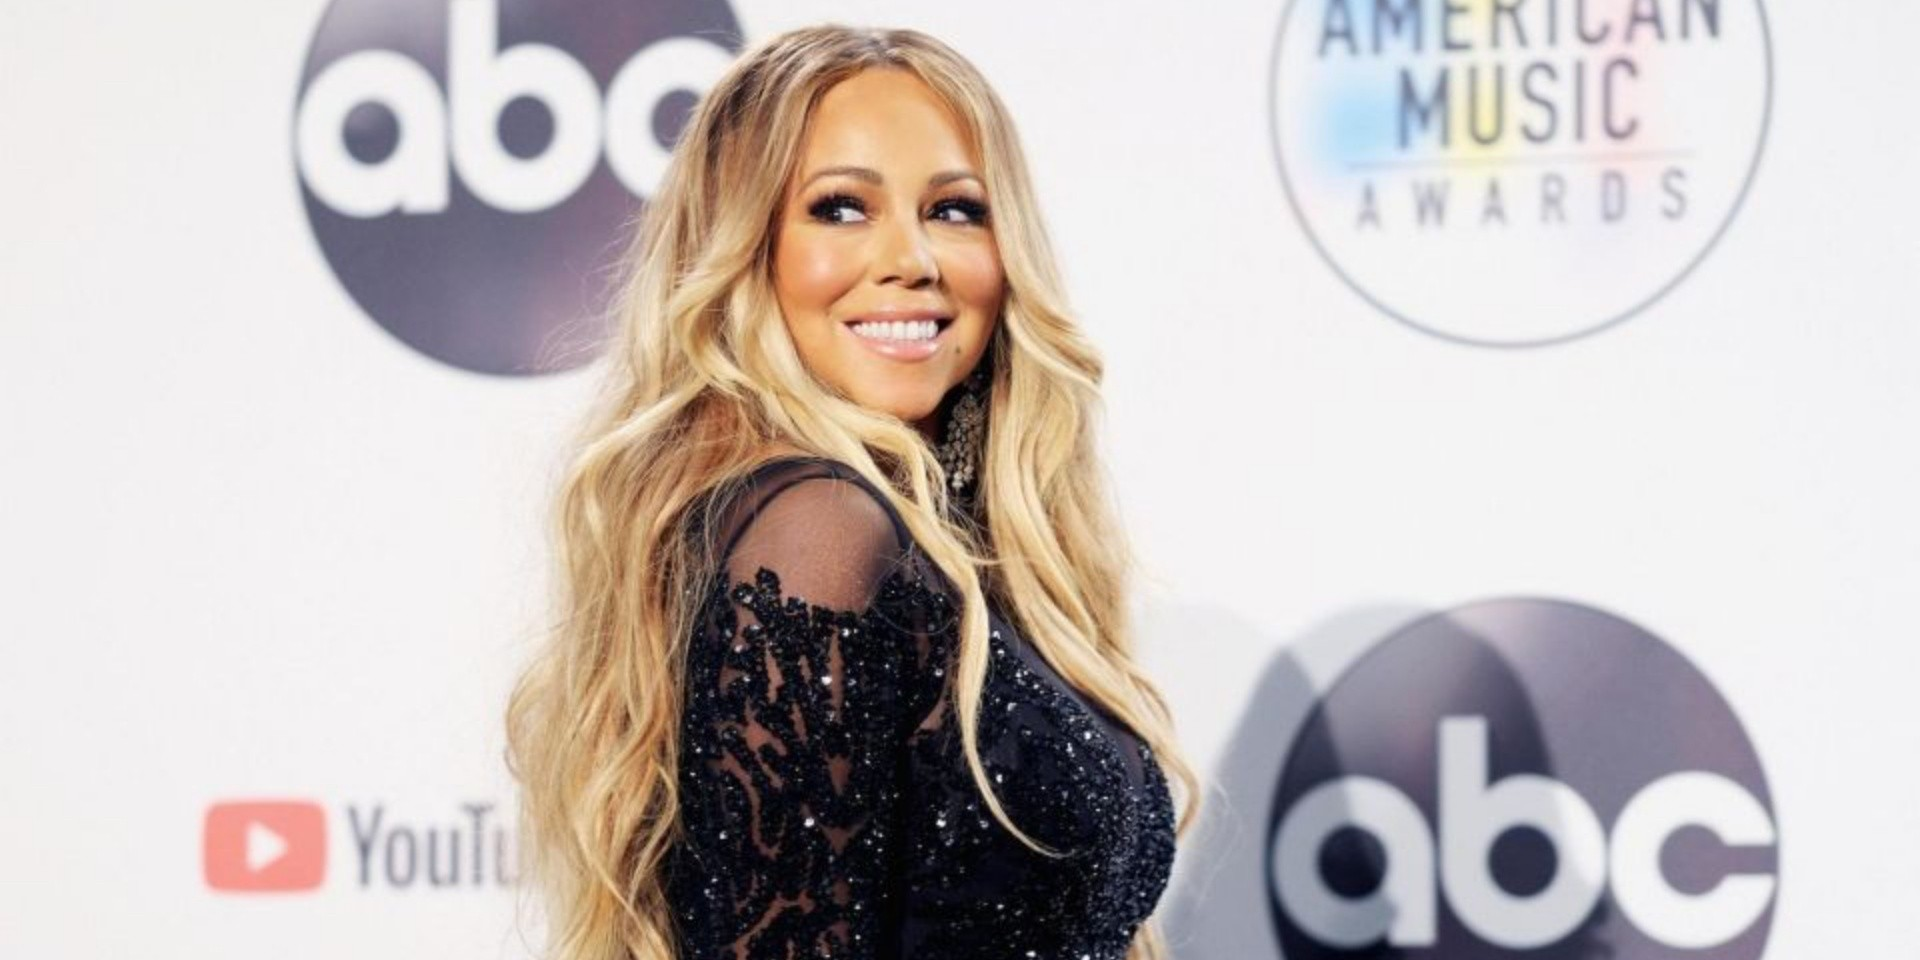 Mariah Carey releases uplifting theme song 'In the Mix' for Mixed-ish